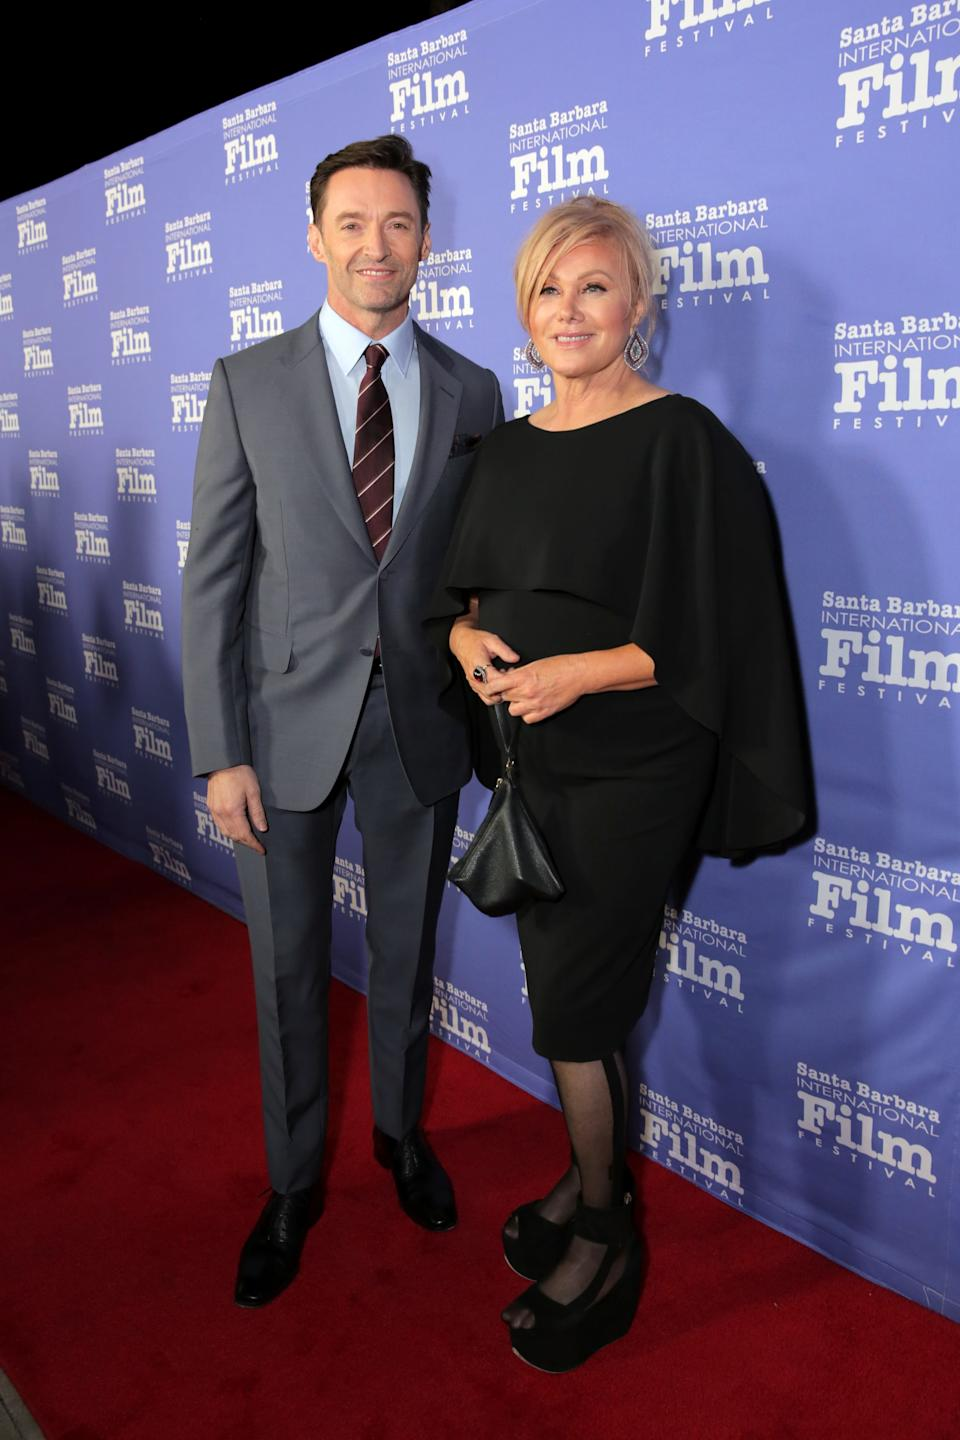 GOLETA, CALIFORNIA - NOVEMBER 19: Hugh Jackman and Deborra-lee Furness attend Santa Barbara International Film Festival's Kirk Douglas Award Honoring Hugh Jackman at The Ritz-Carlton Bacara on November 19, 2018 in Goleta, California. (Photo by Rebecca Sapp/Getty Images for Santa Barbara International Film Festival)